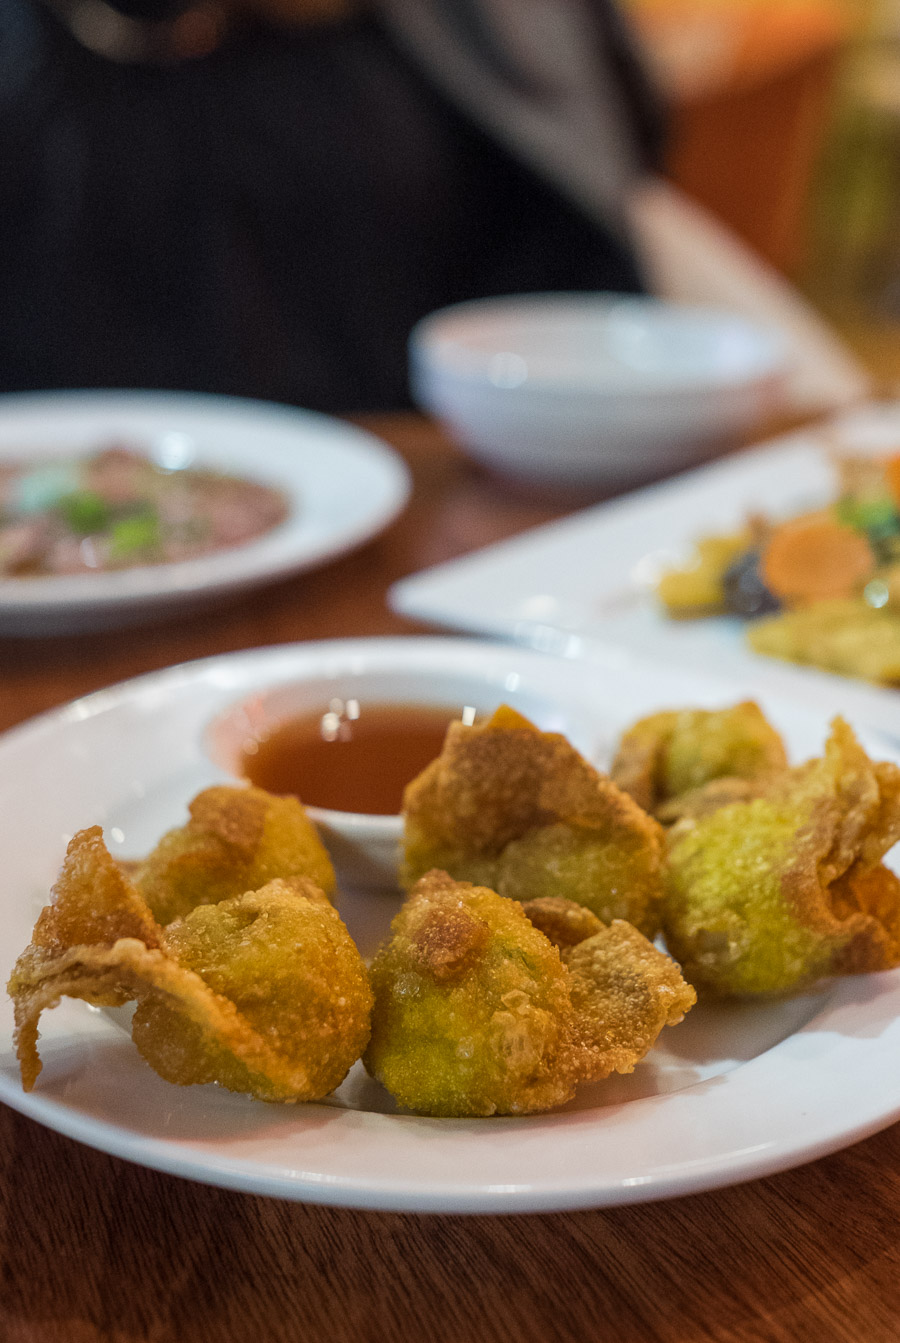 Pork and ginger wontons (AU$6.50) with sweet and sour red wine dipping sauce.